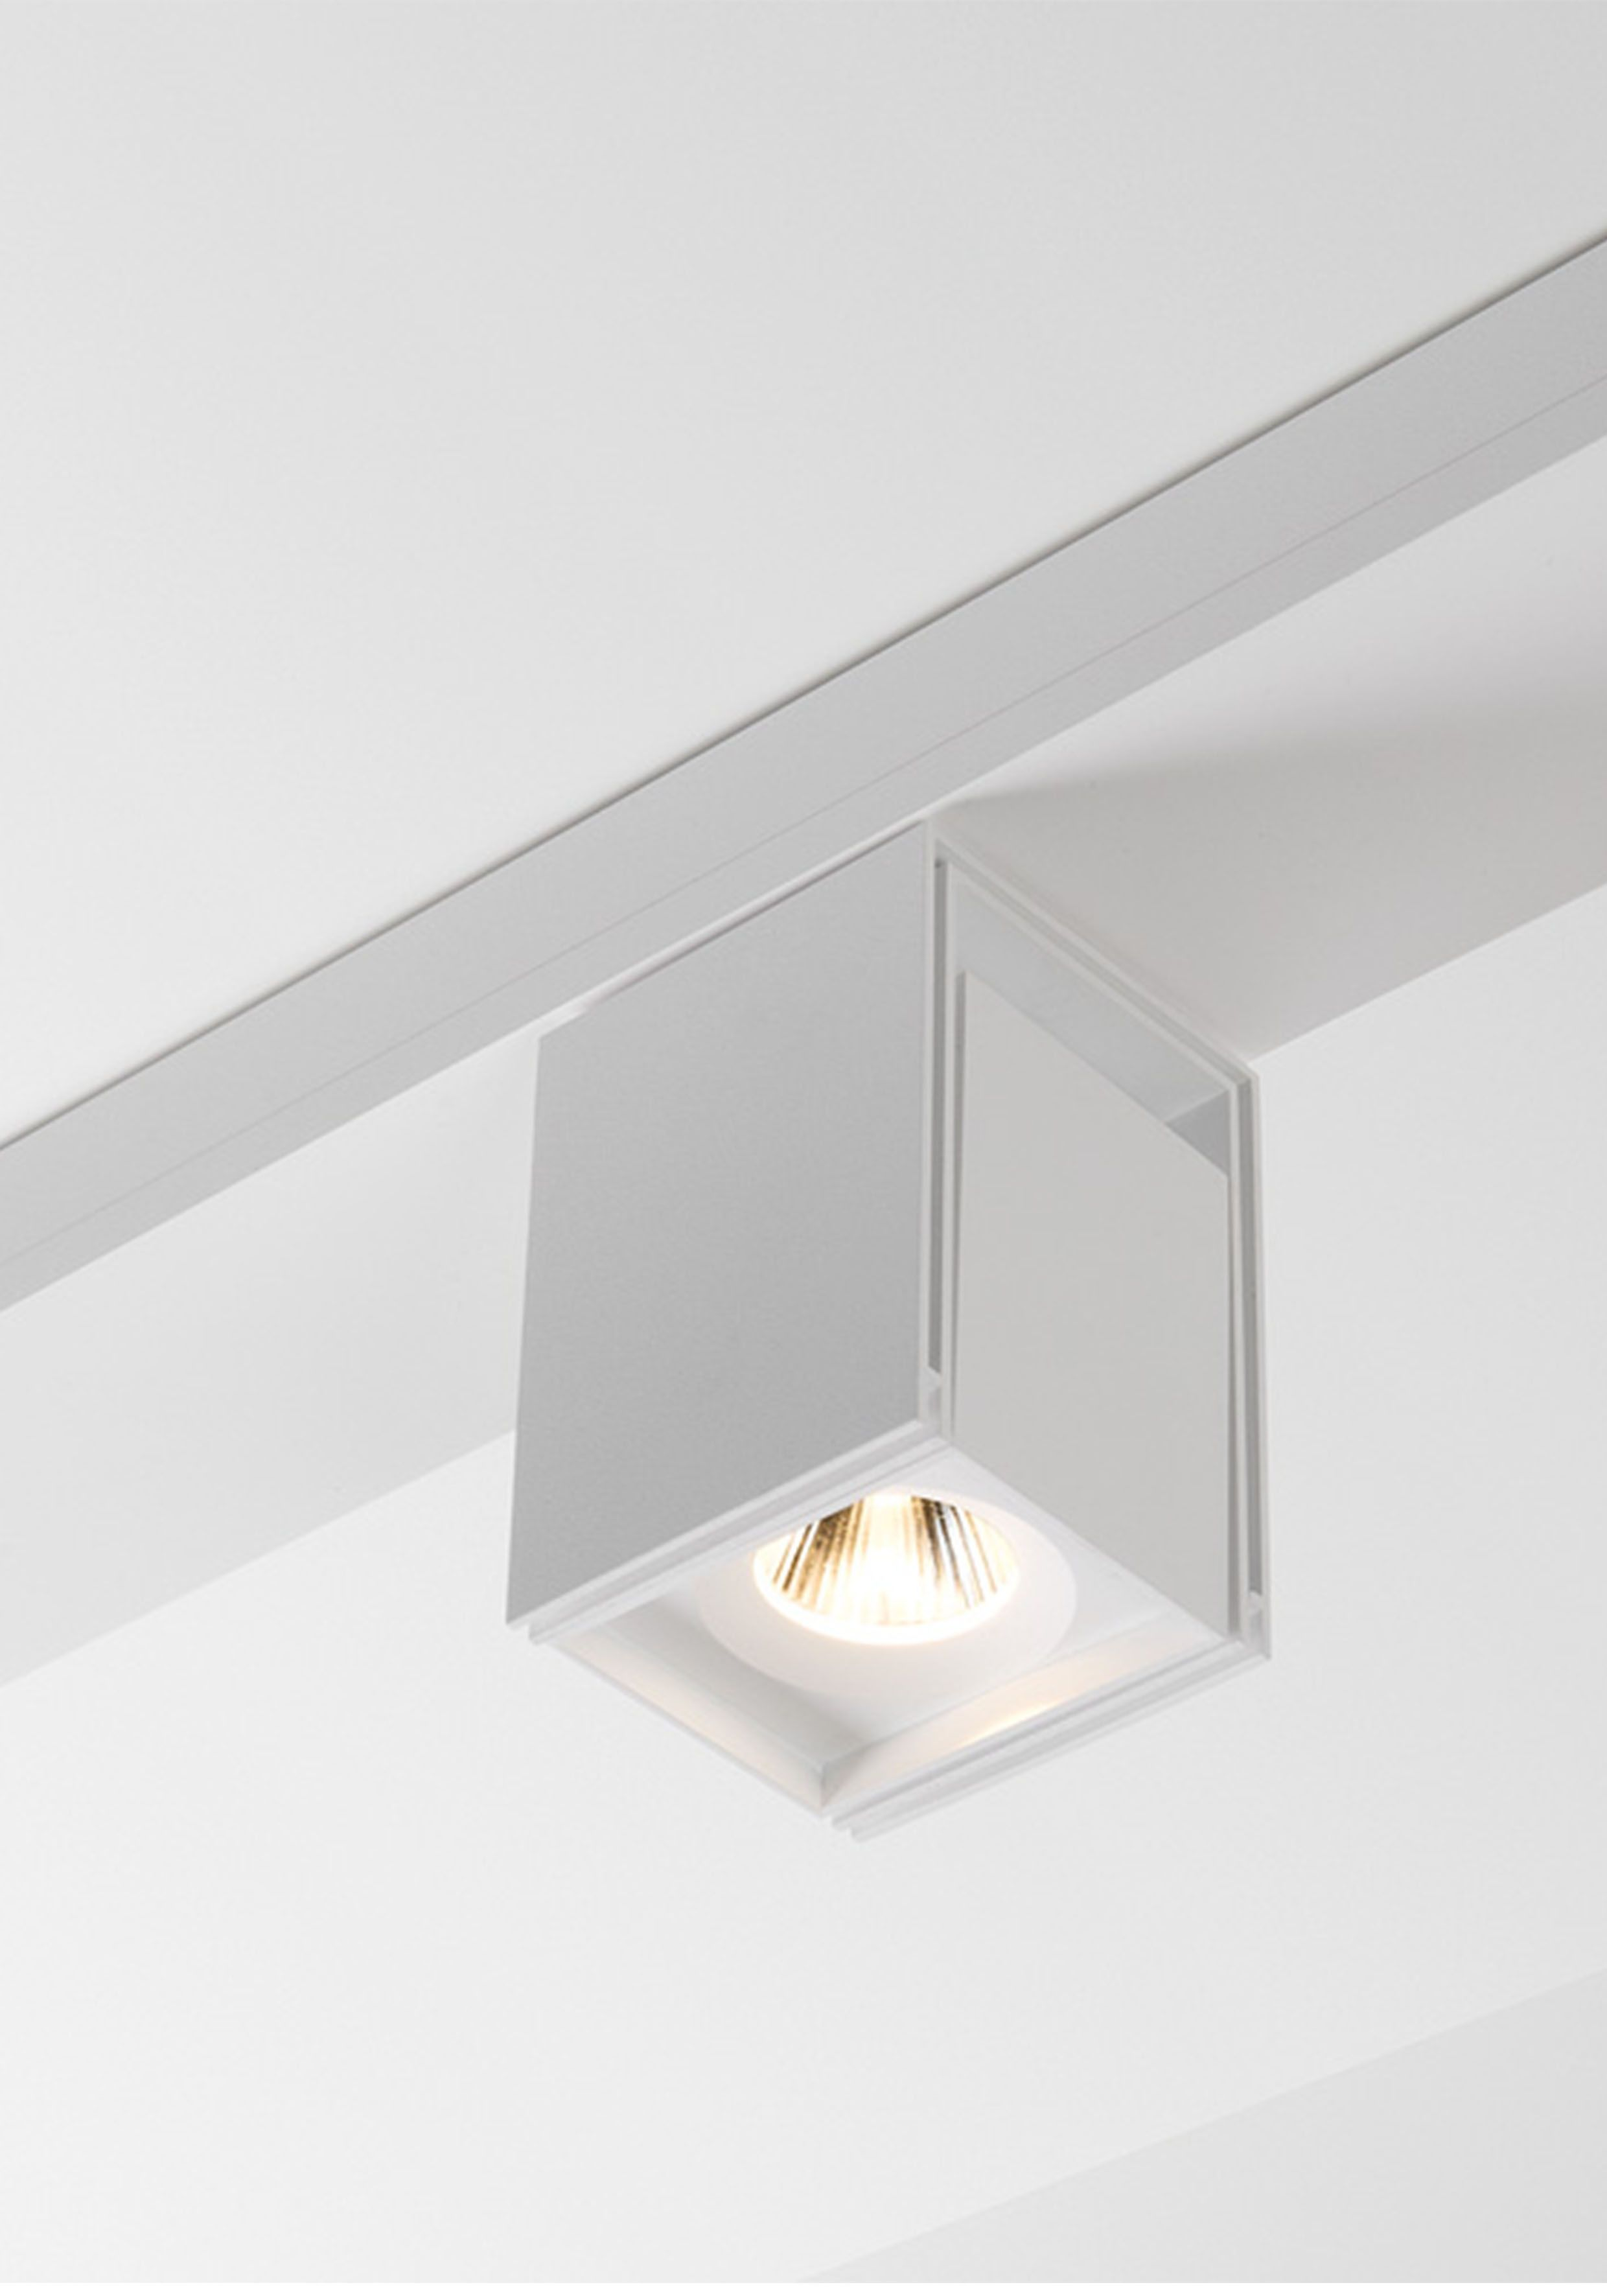 Ceiling Mounted Light, MP78 Fortimo Led by Modular lighting _ ... for Spotlight Interior Led  56mzq